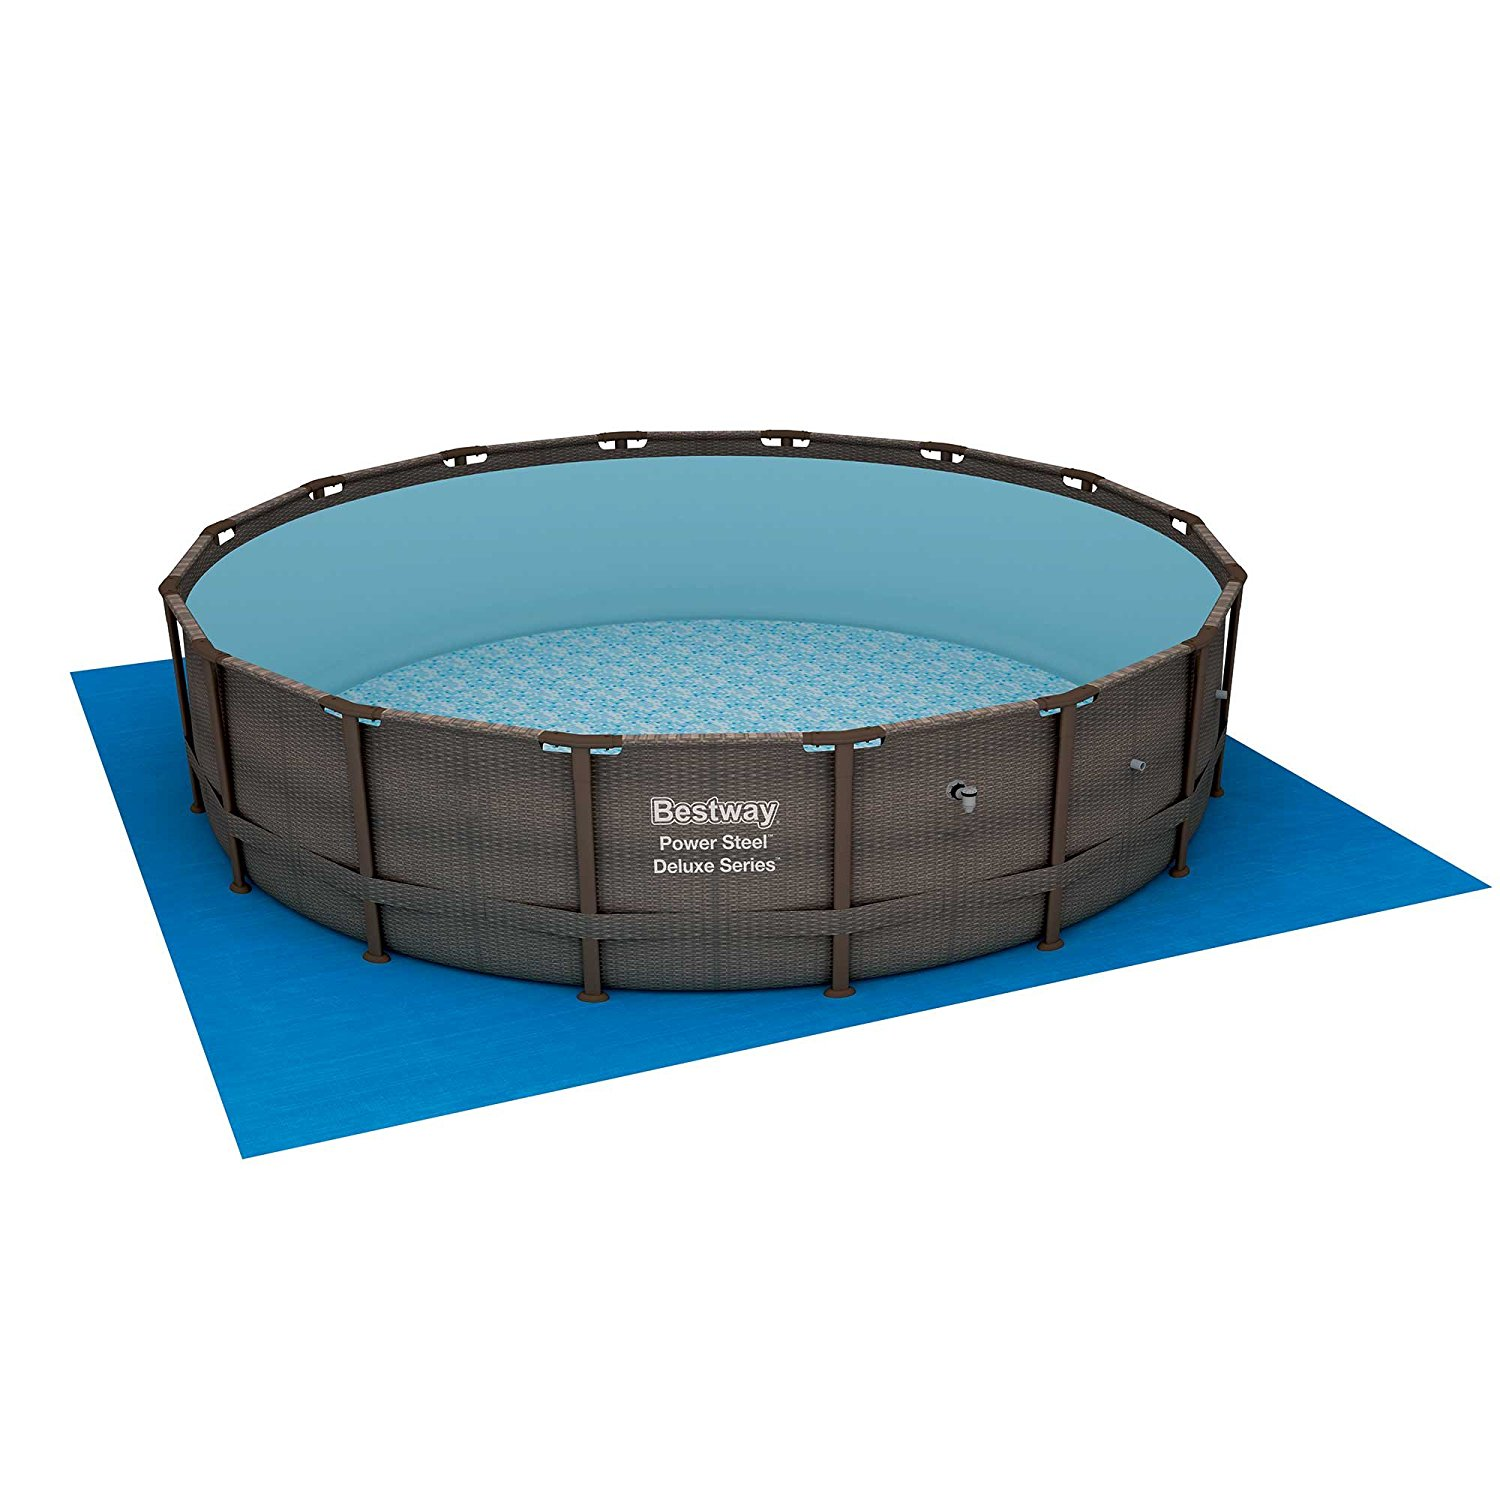 Bestway 14 39 X 42 Power Steel Frame Above Ground Swimming Pool Set With Pump Pool Chemical